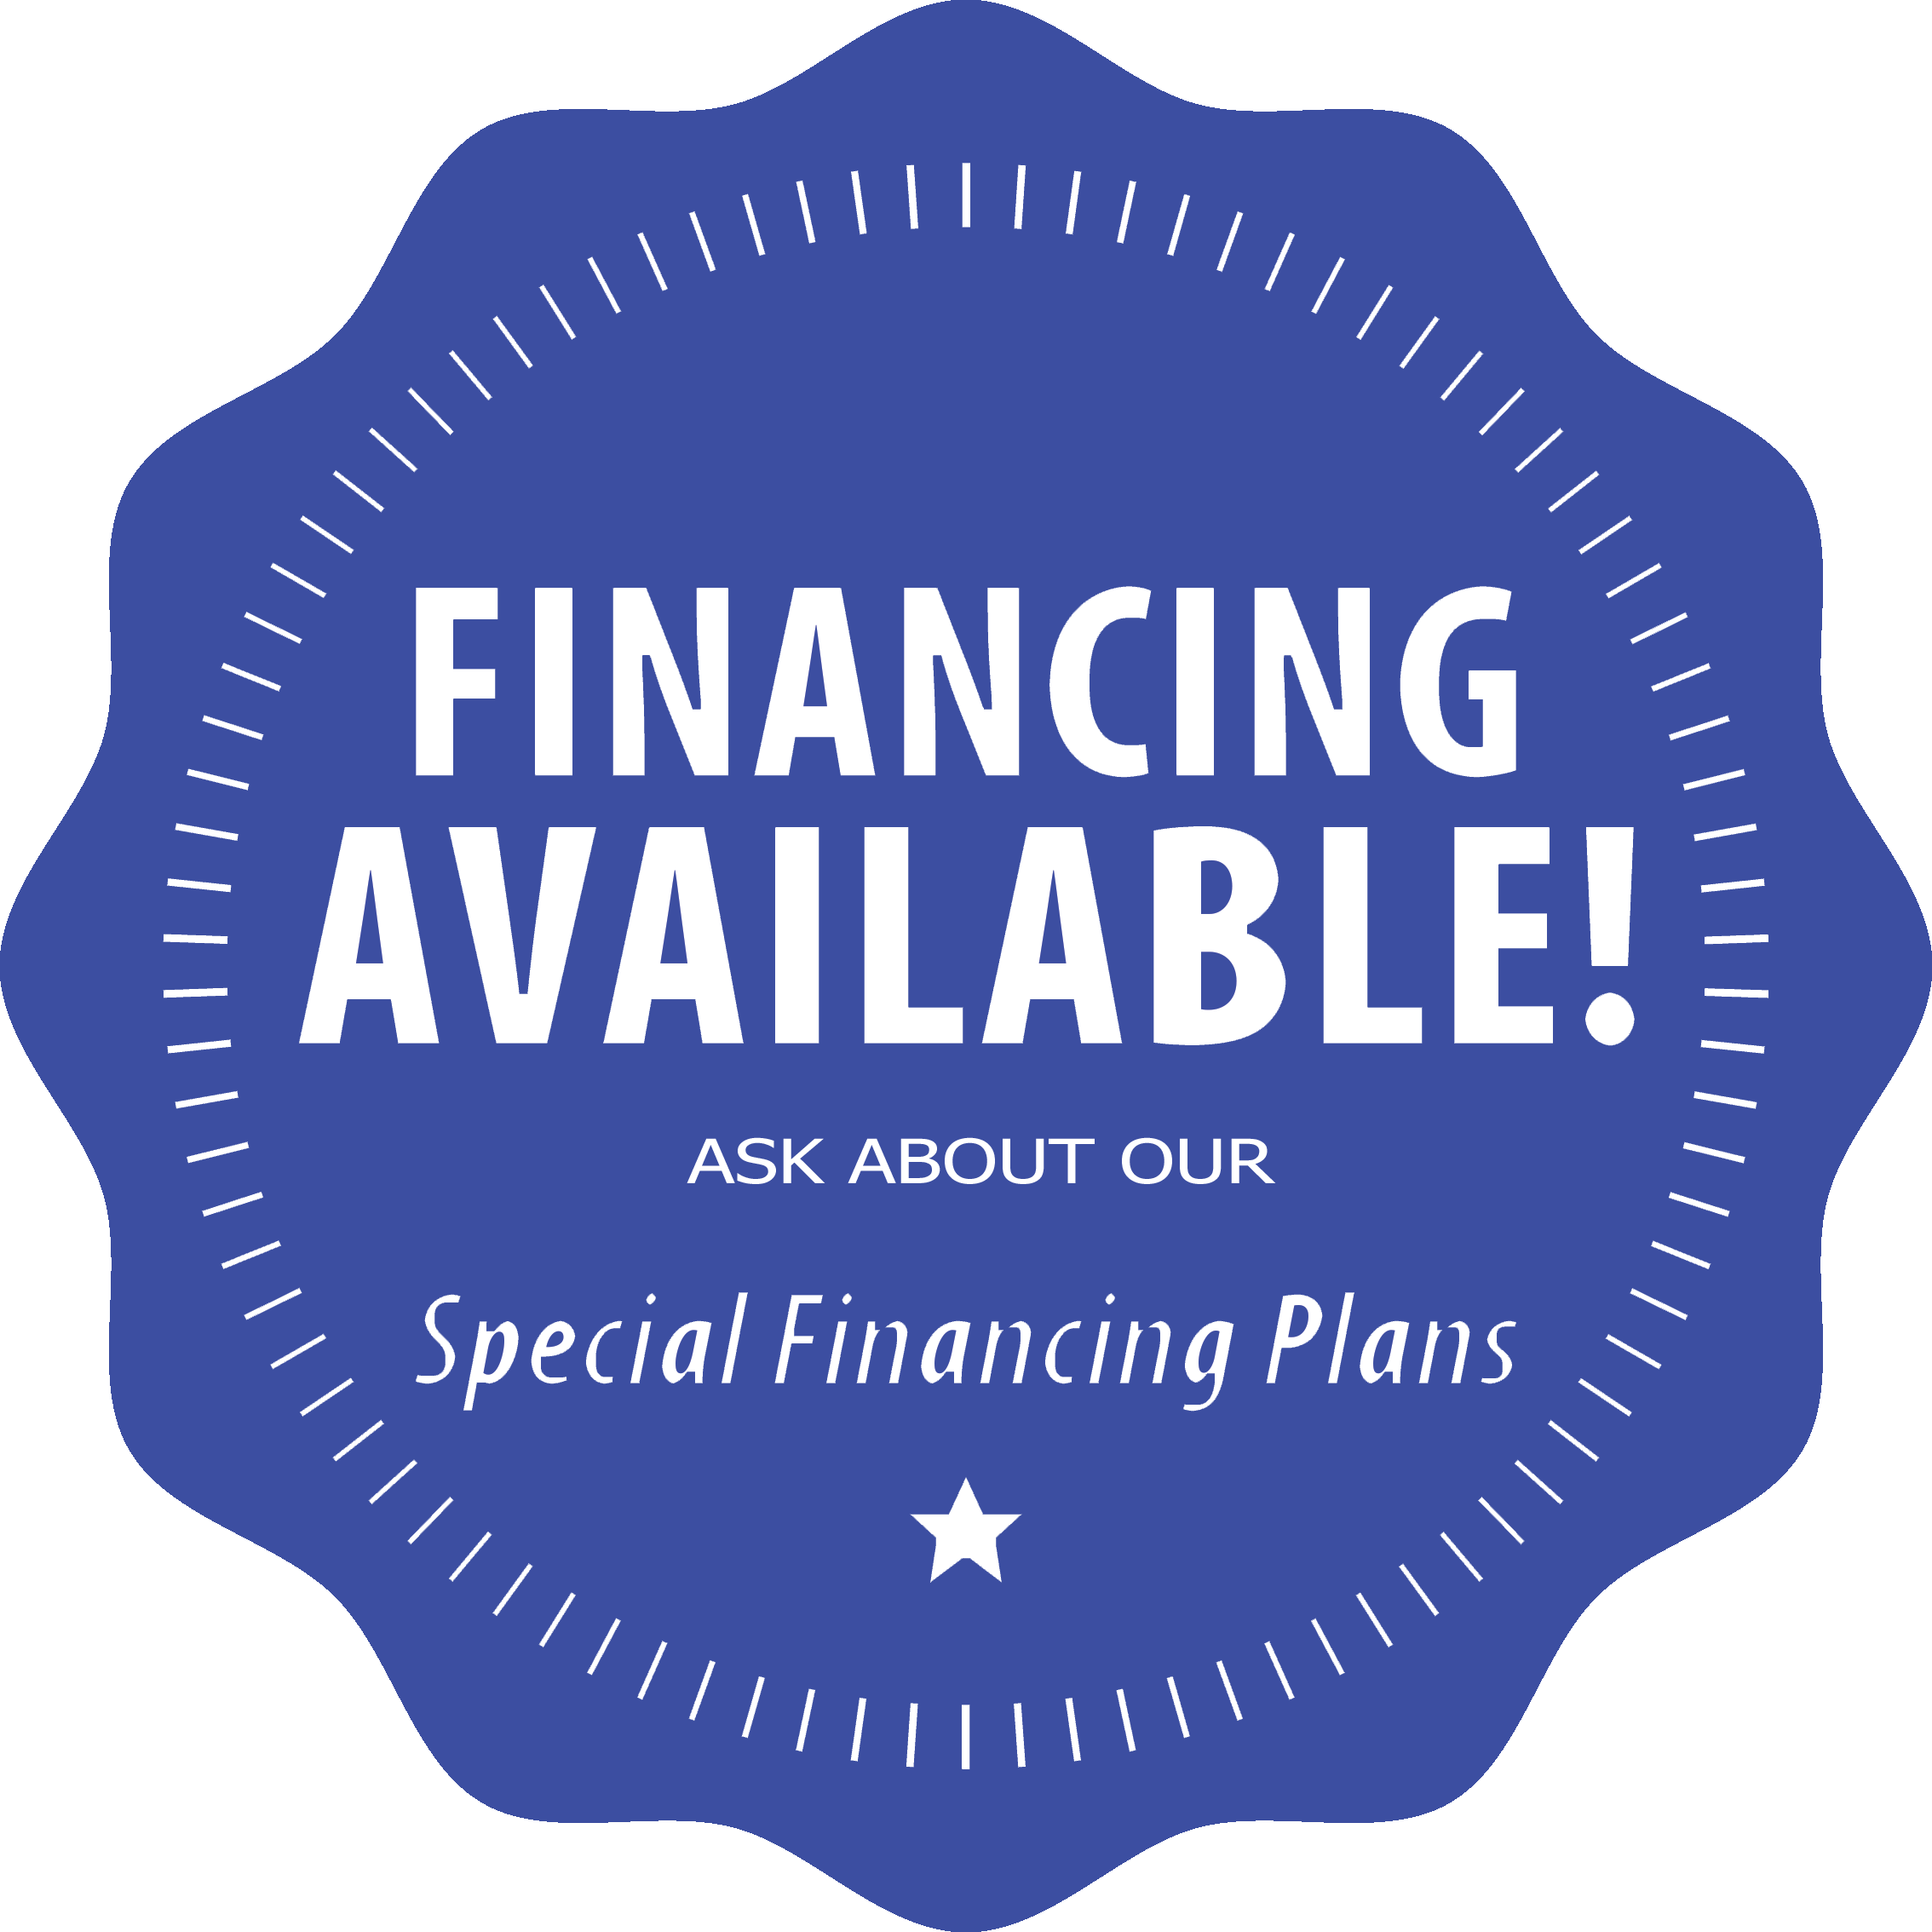 image shows financing available icon. Porch Conversion of Charlotte can help finance a new sunroom for customers in Charlotte, Winston-Salem and Greensboro areas